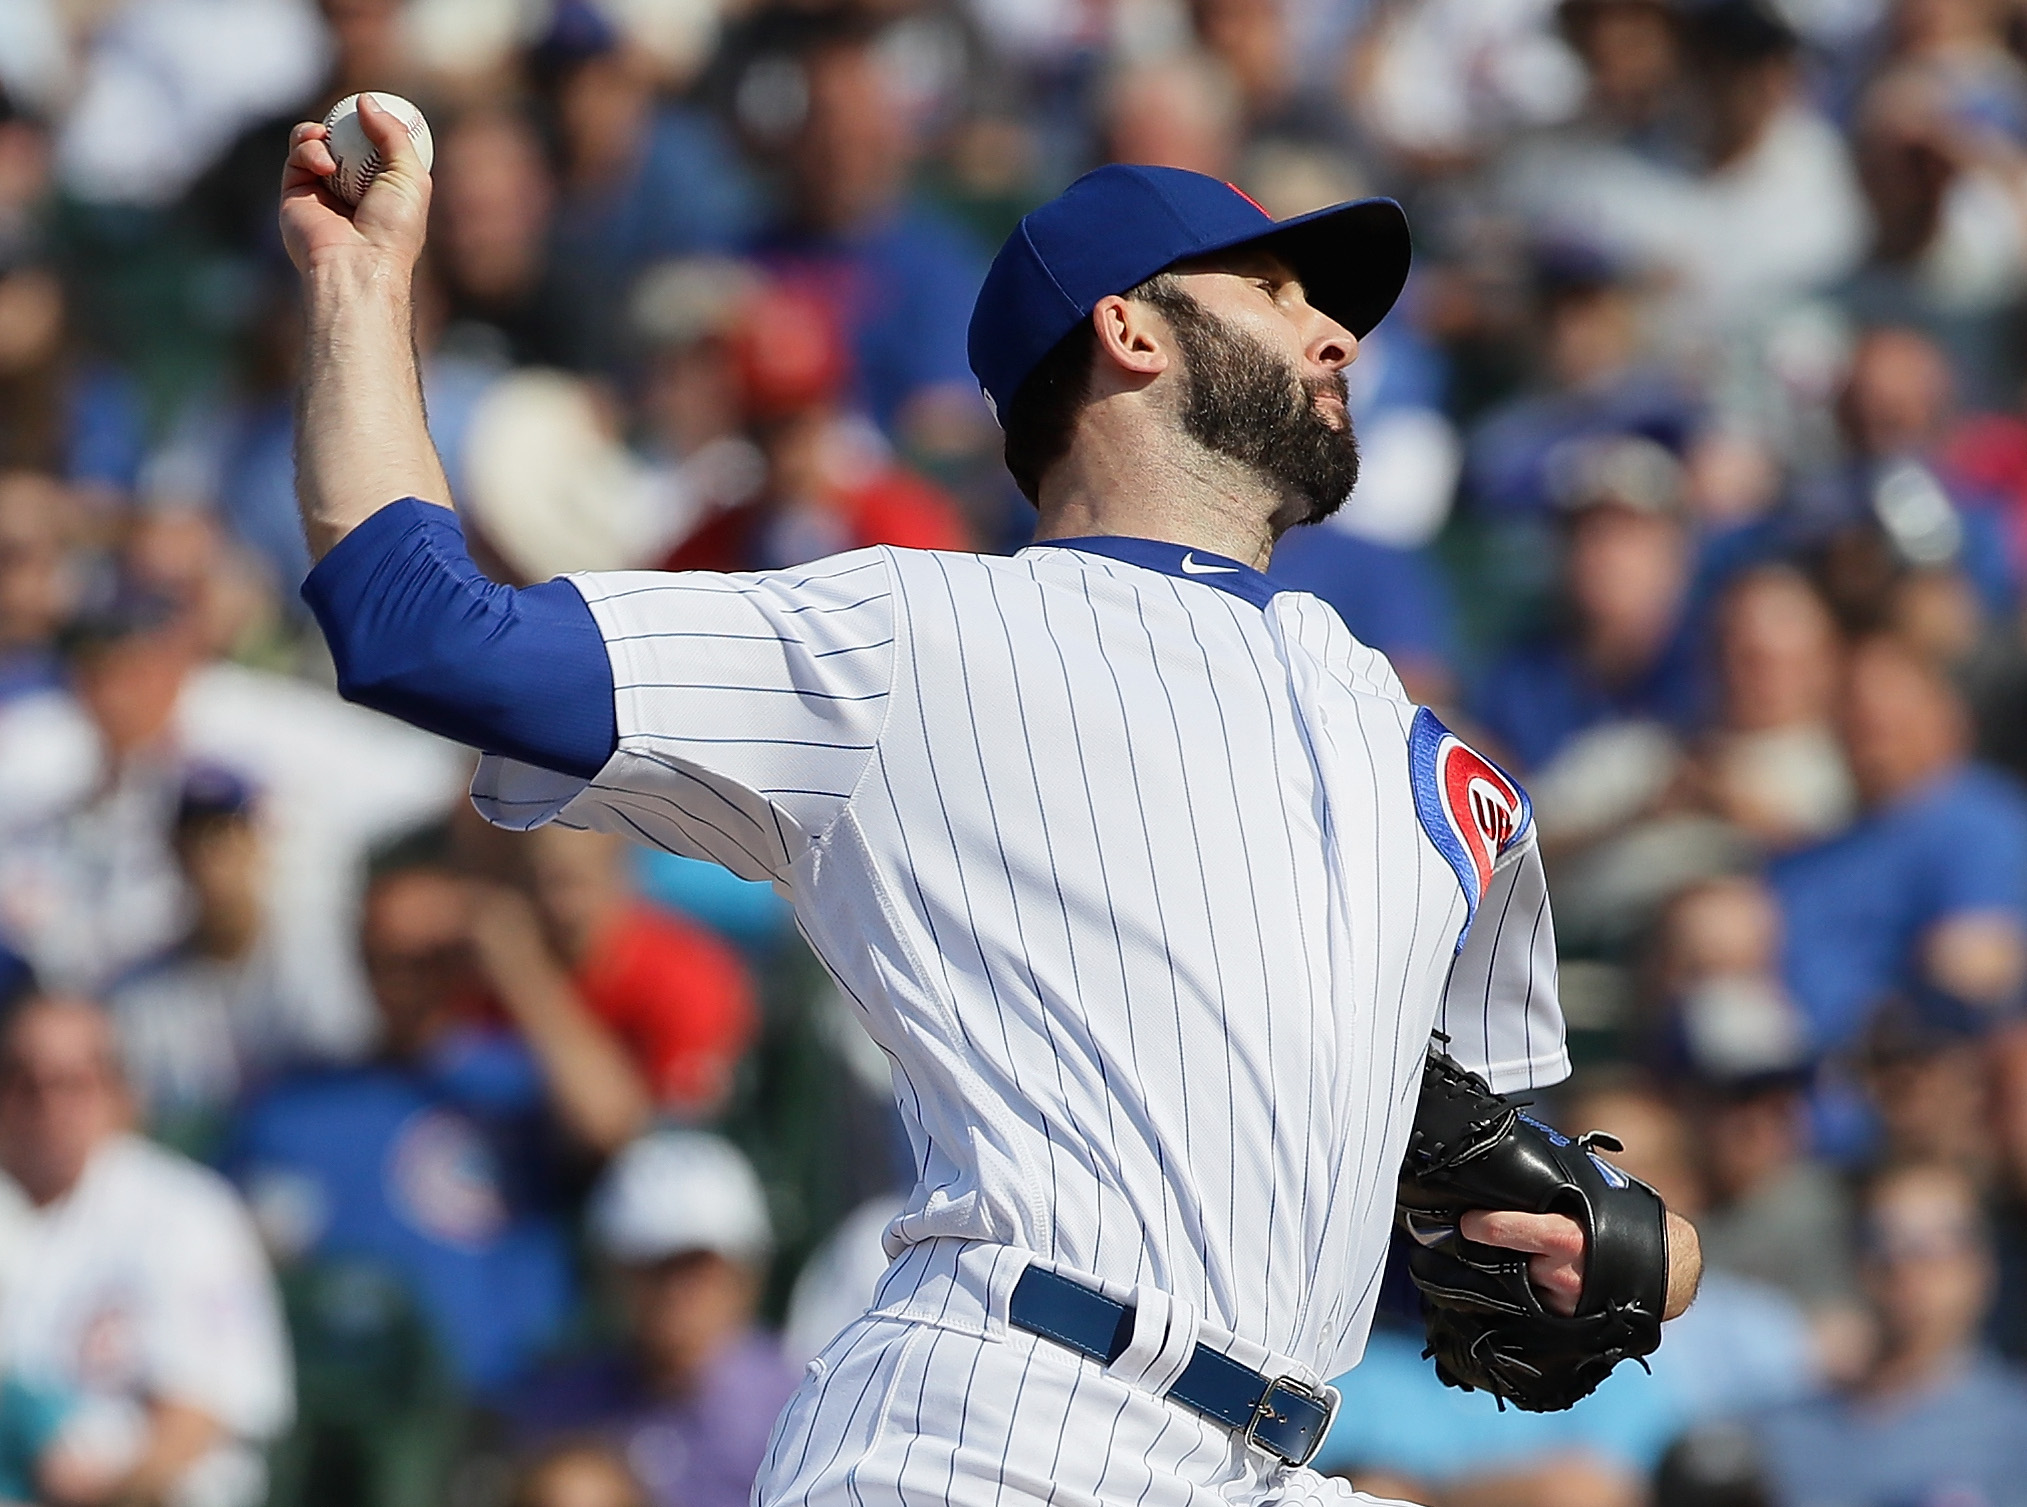 Brandon Morrow earning one of his 22 saves for the Cubs in 2018.